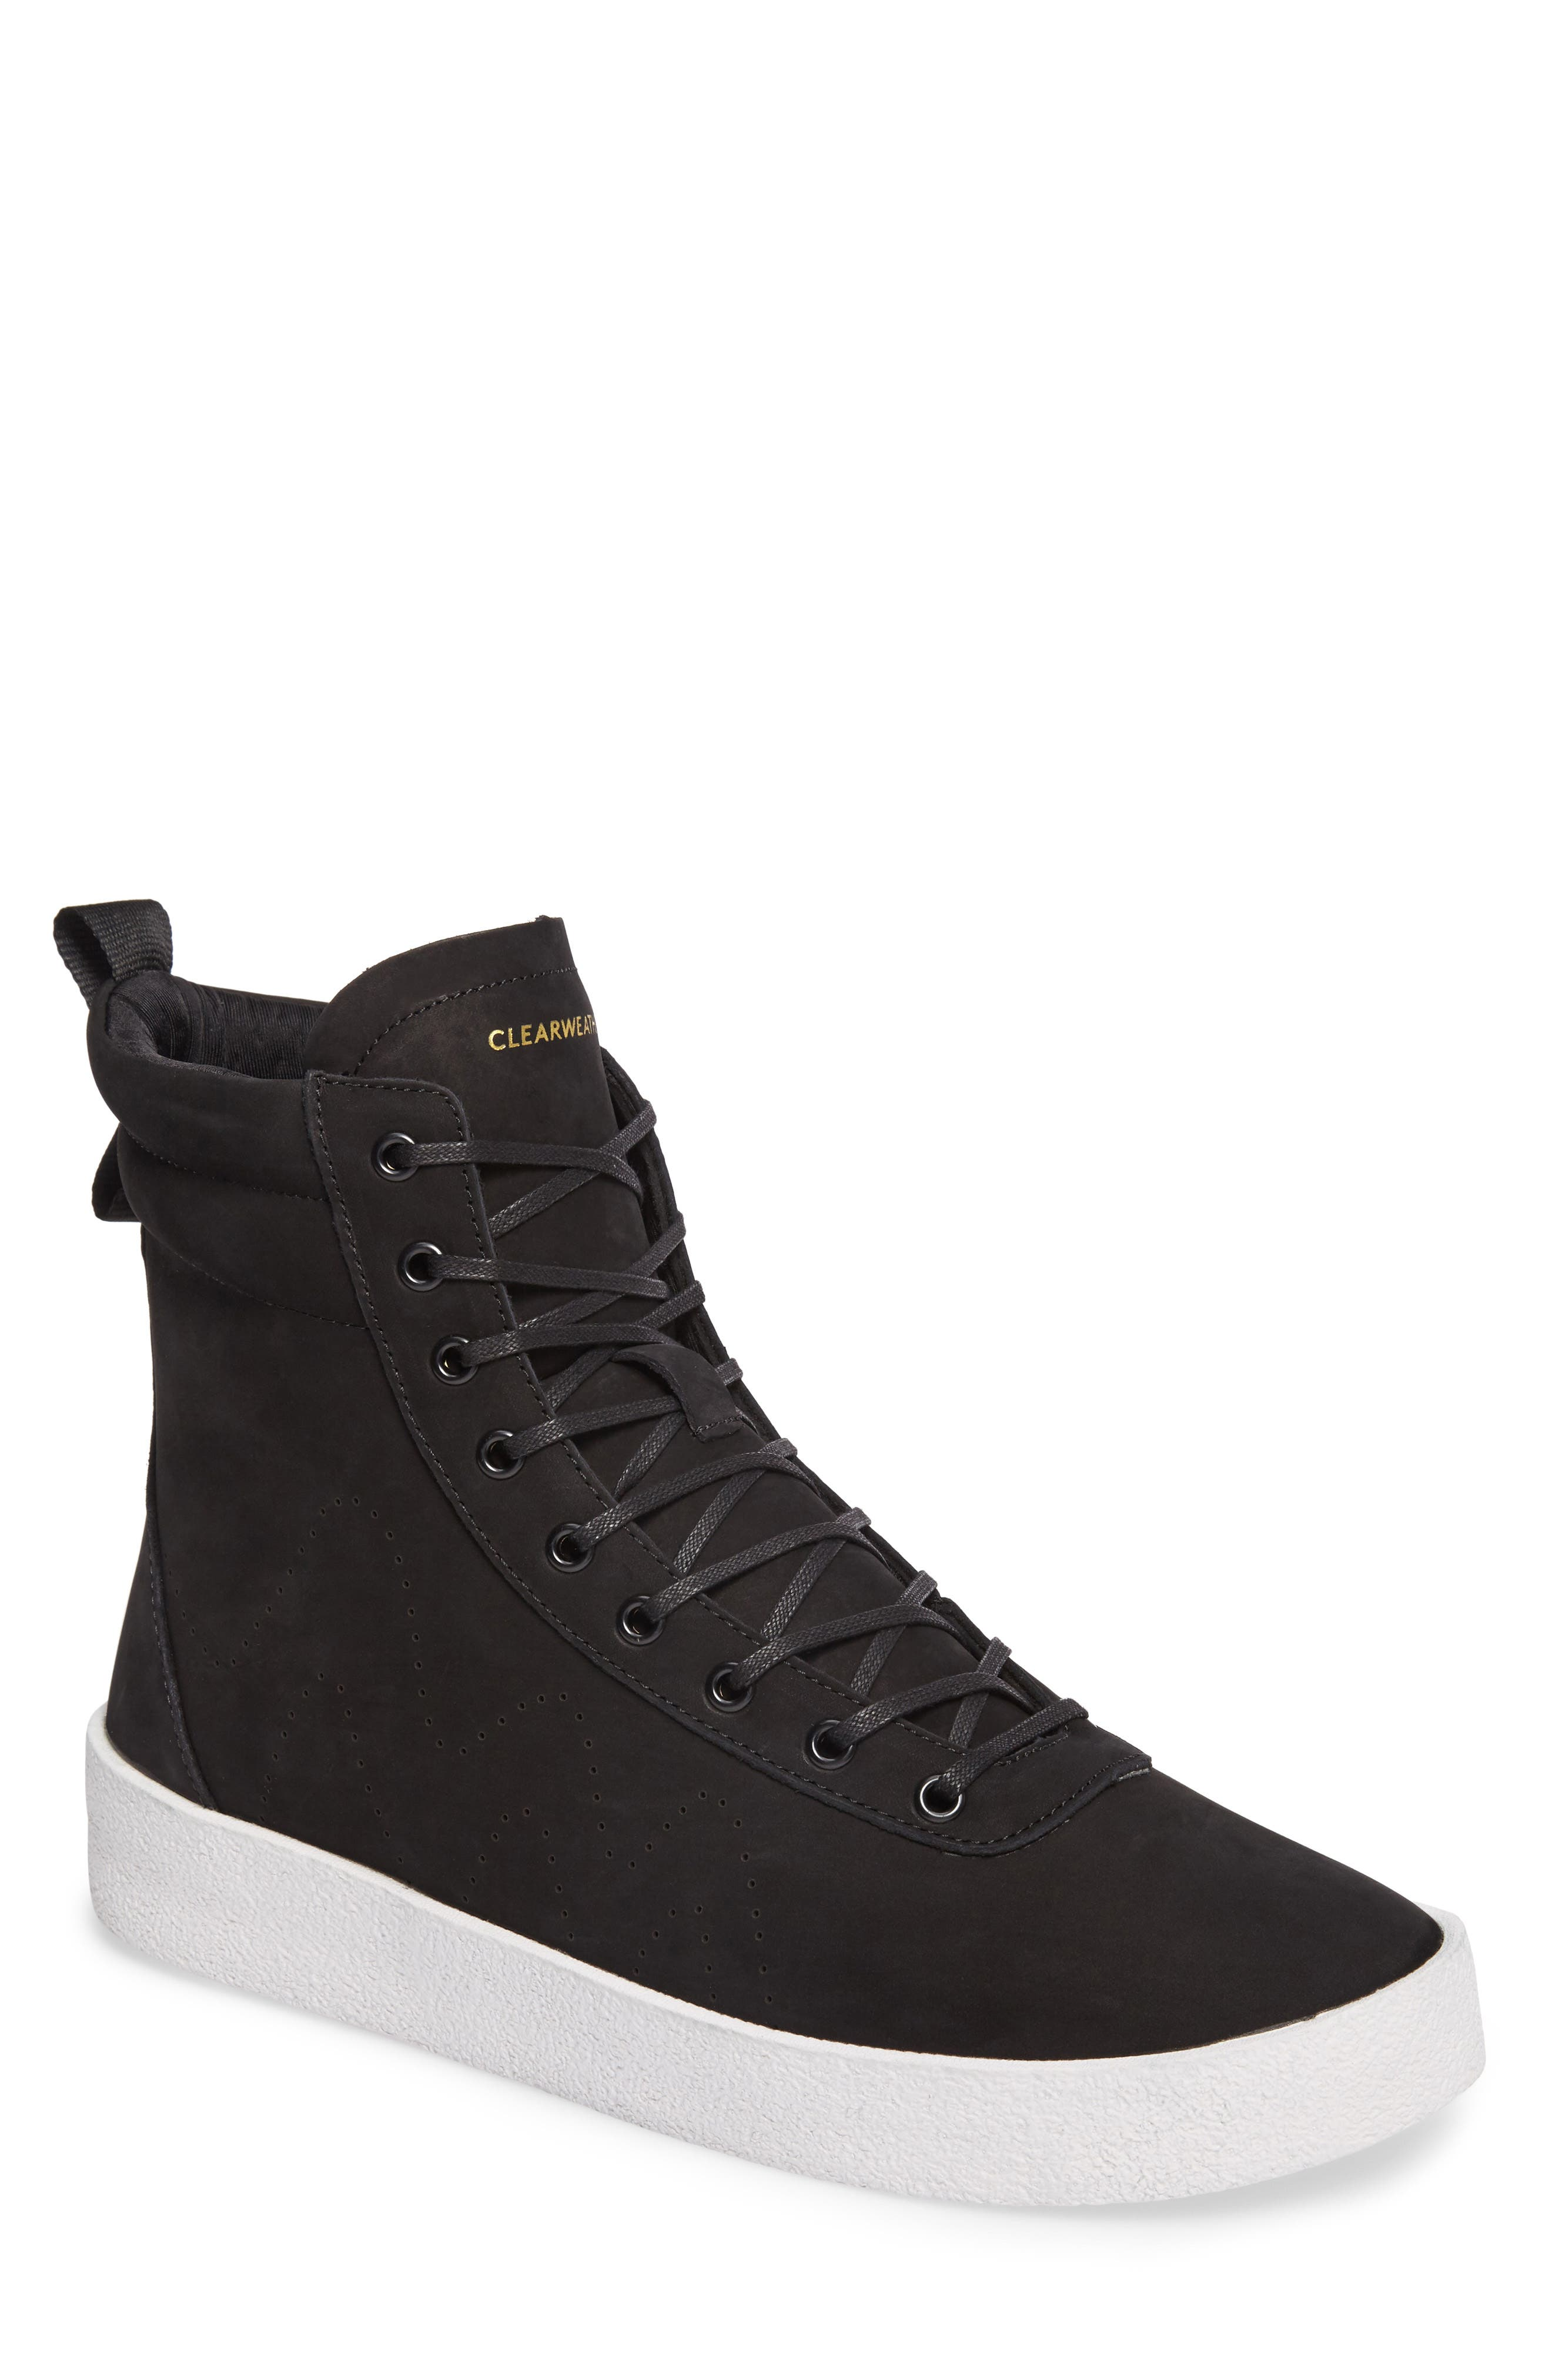 Main Image - Clearweather Highlander High Top Sneaker (Men)